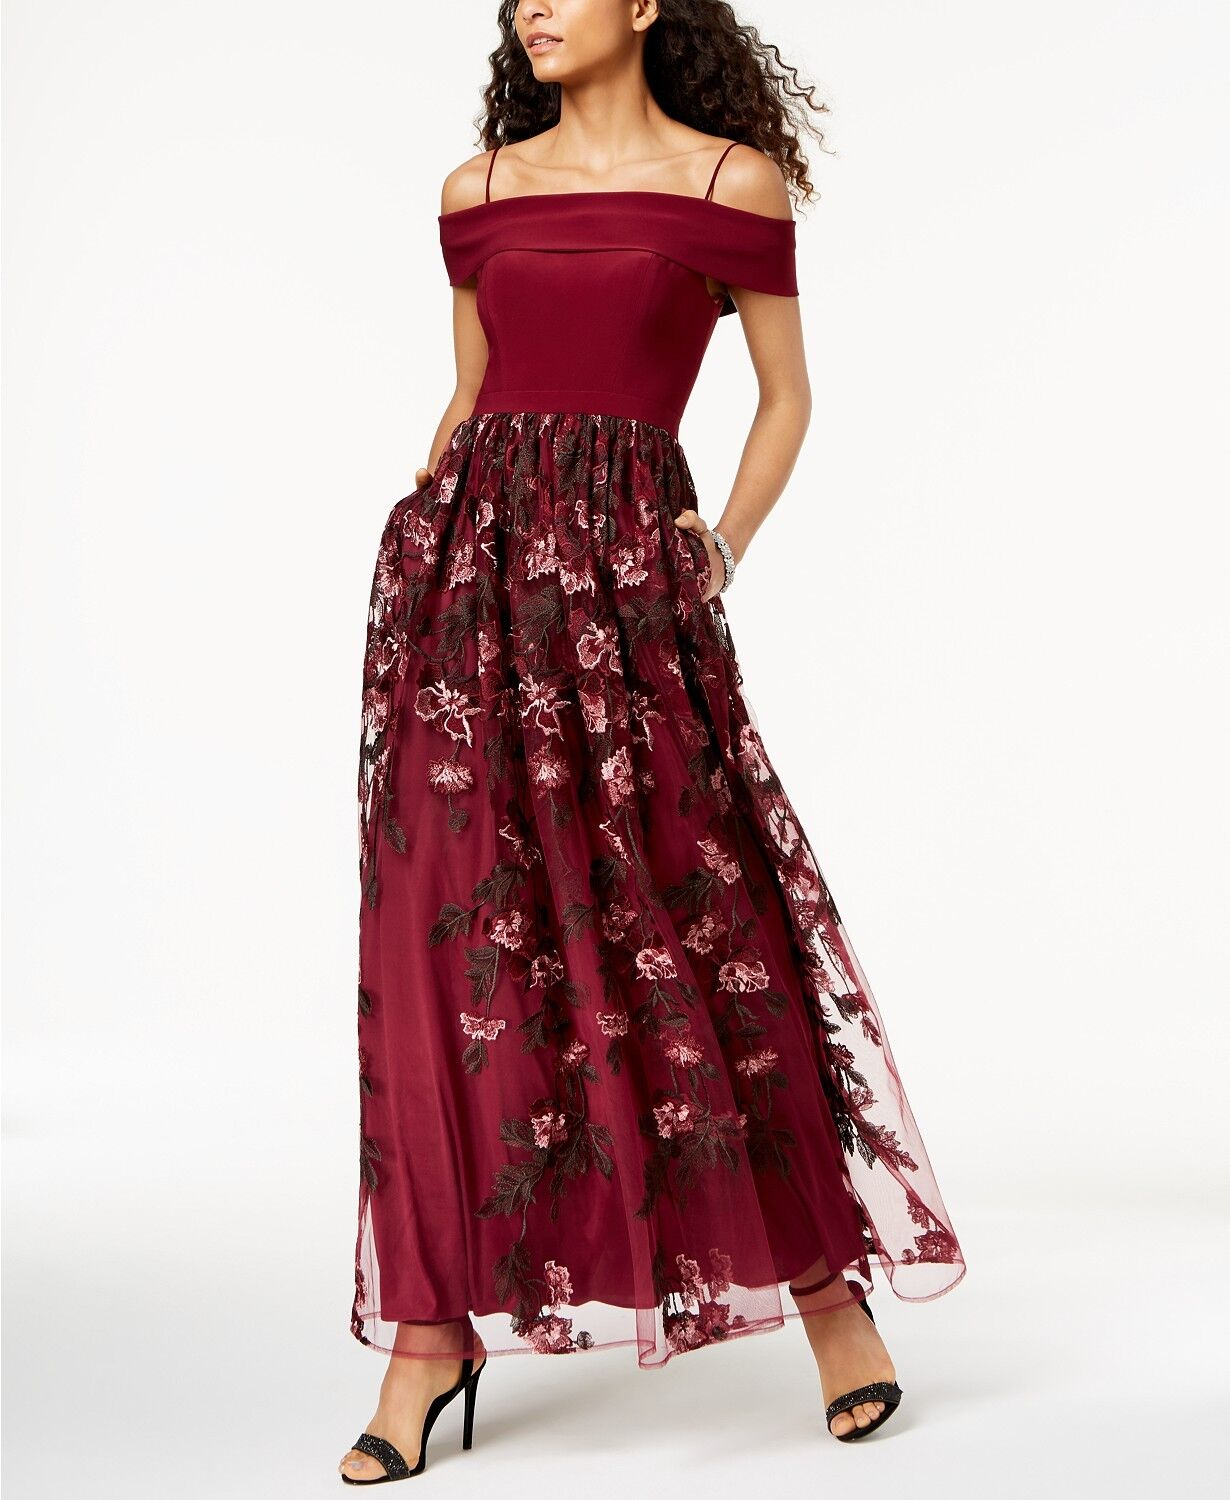 NIGHTWAY damen rot EMBROIDErot OFF-THE-SHOULDER GOWN DRESS Größe 4